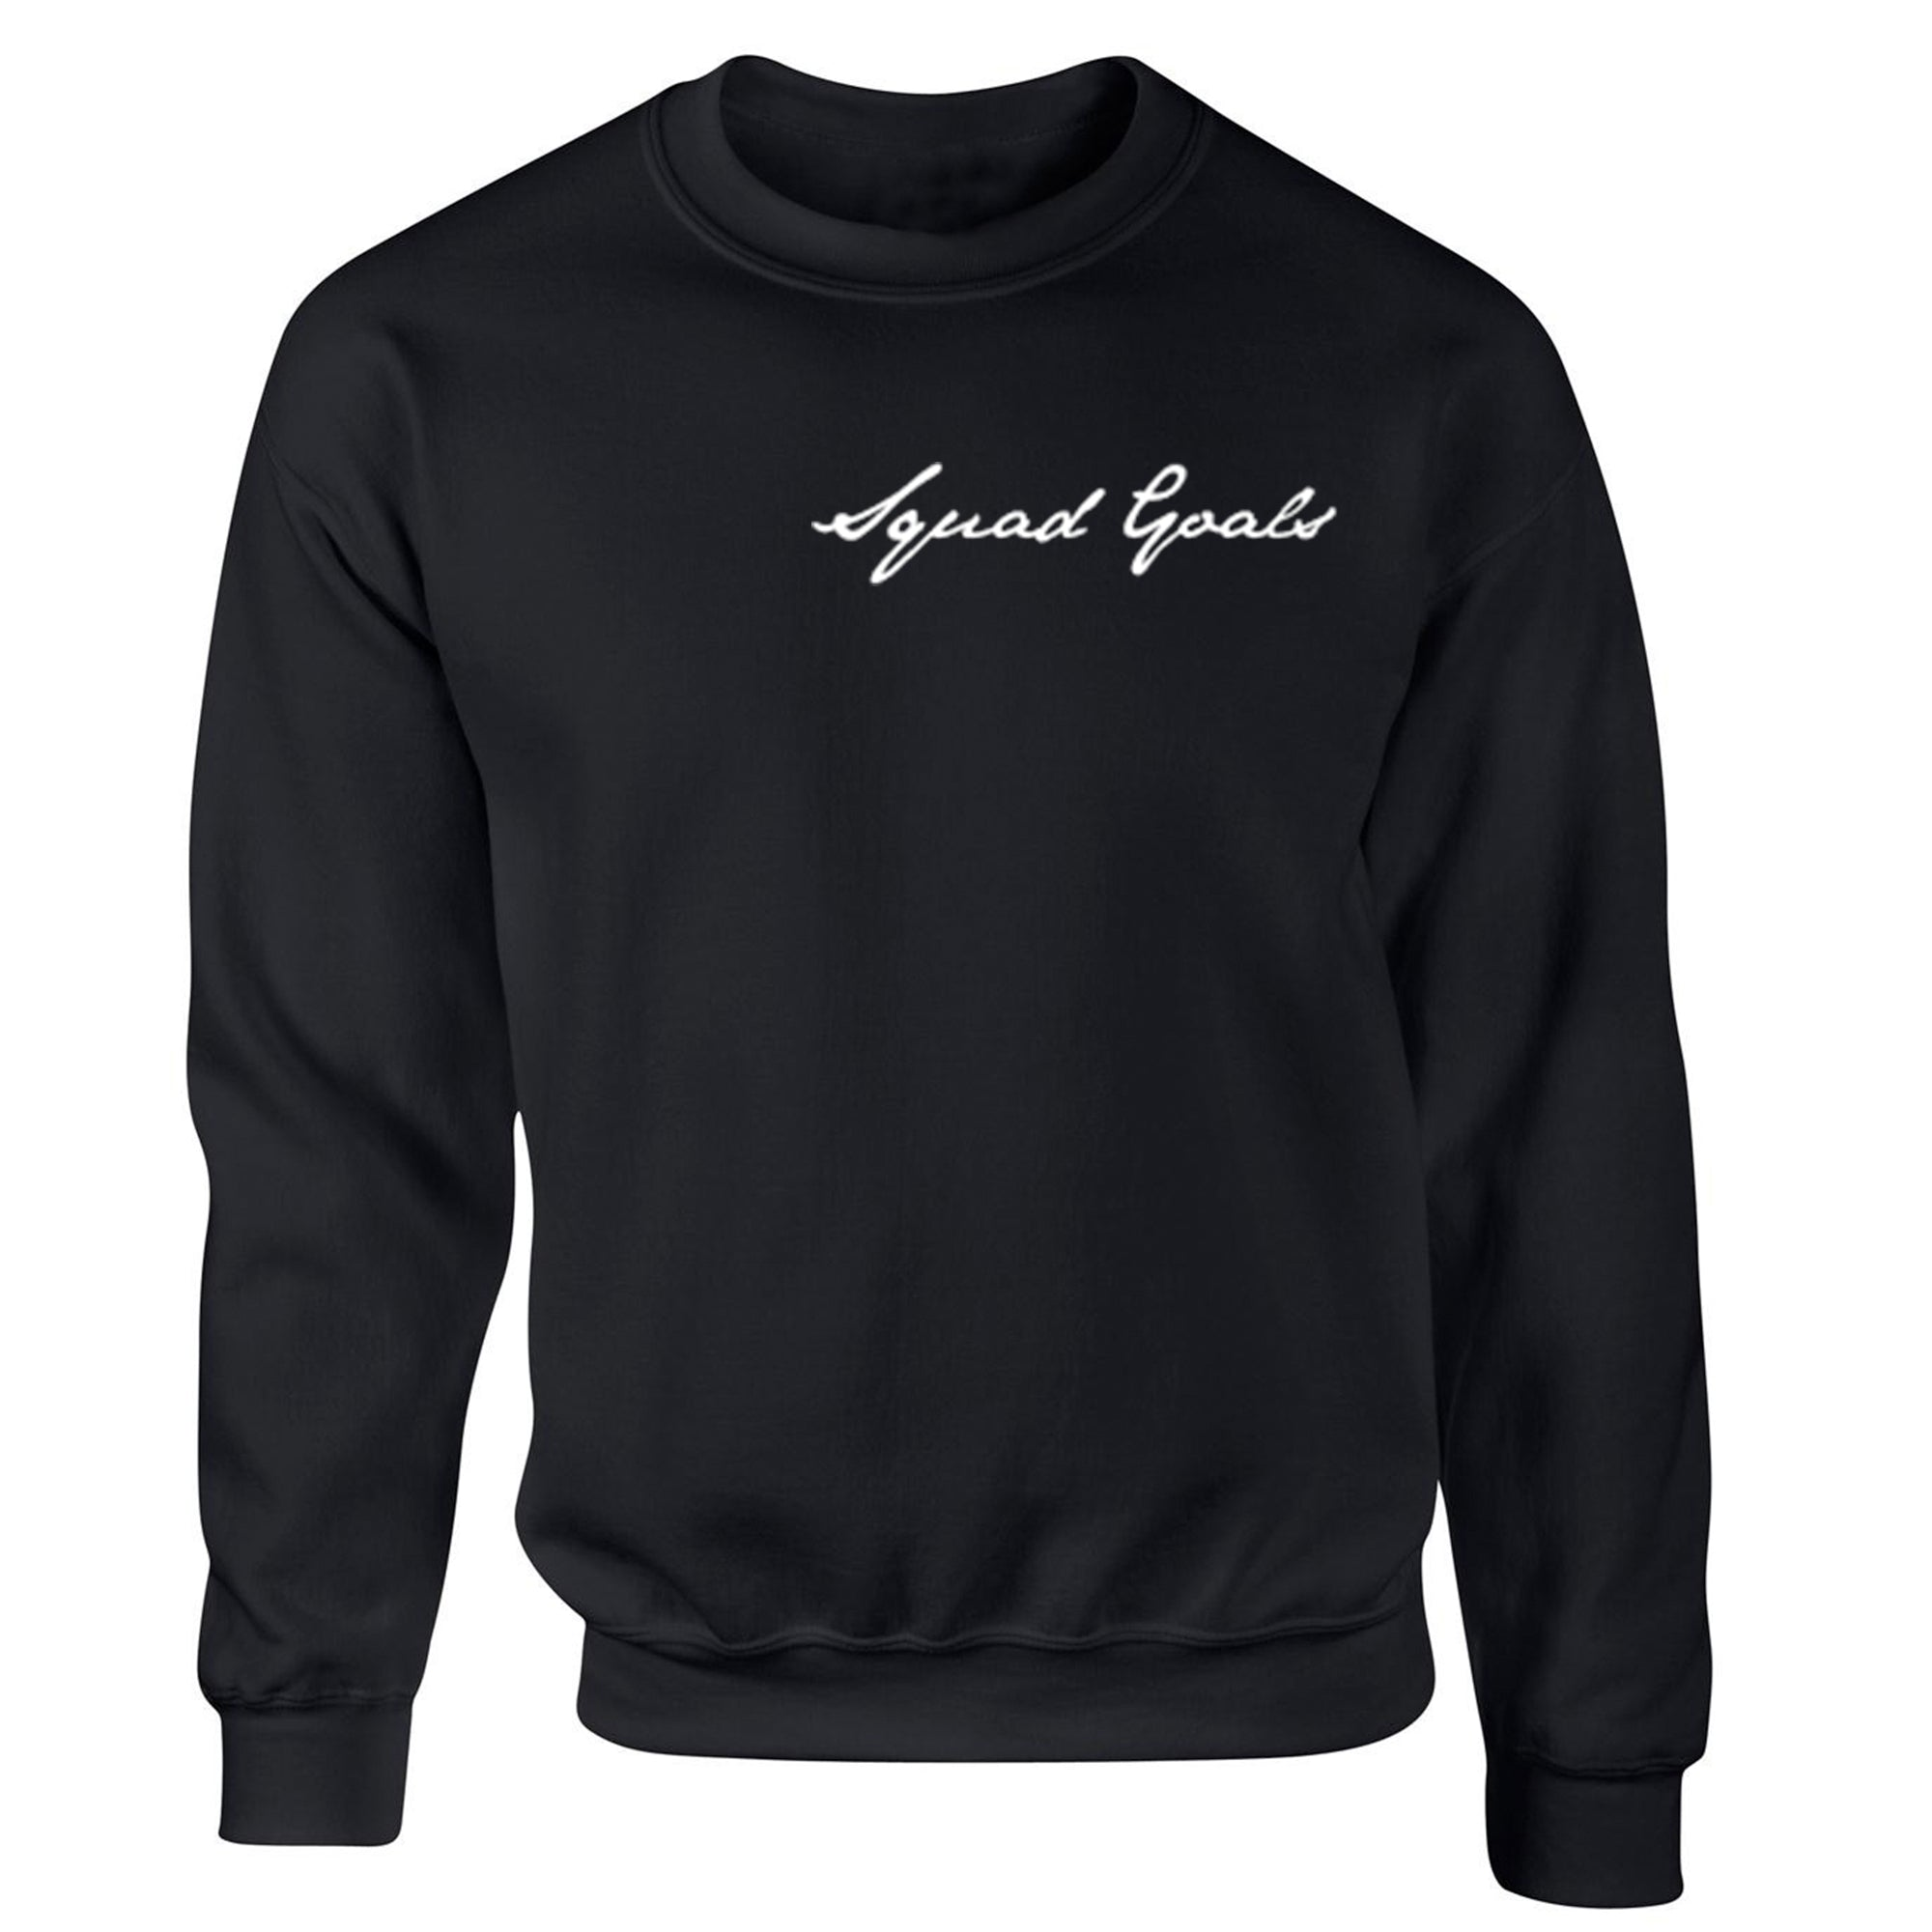 Squad Goals Pocket Unisex Jumper S0402 - Illustrated Identity Ltd.